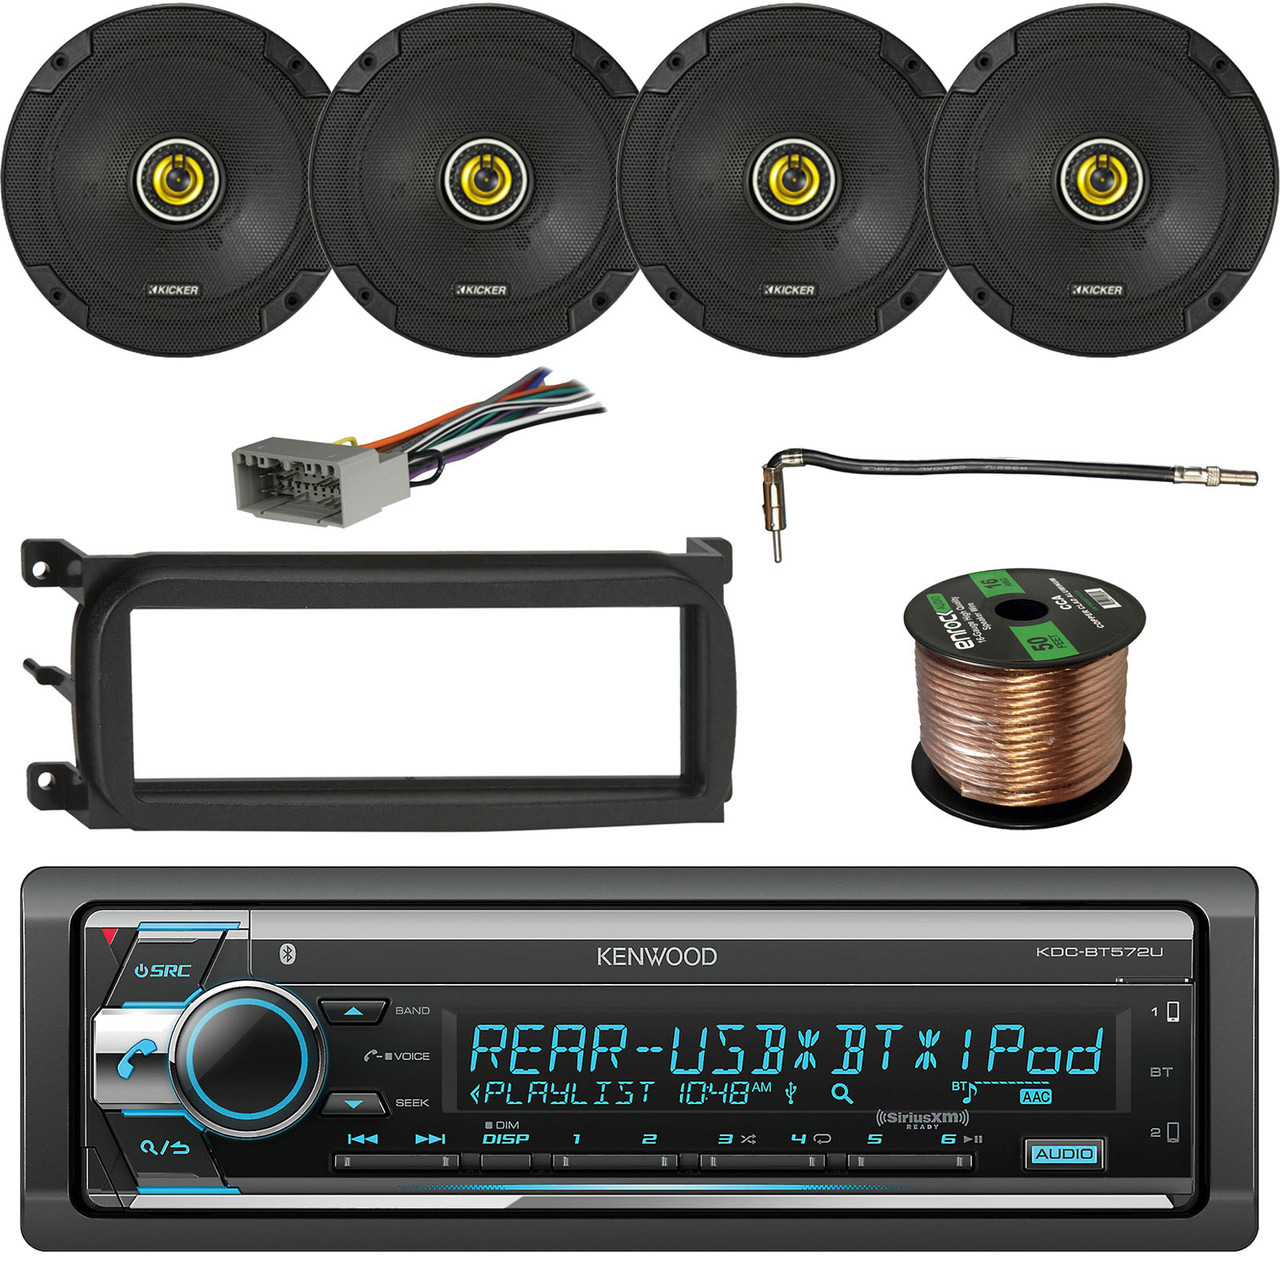 hight resolution of  wiring harness colors kenwood kenwood stereo receiver bluetooth w kicker 600w speakers 2 pairs on kenwood